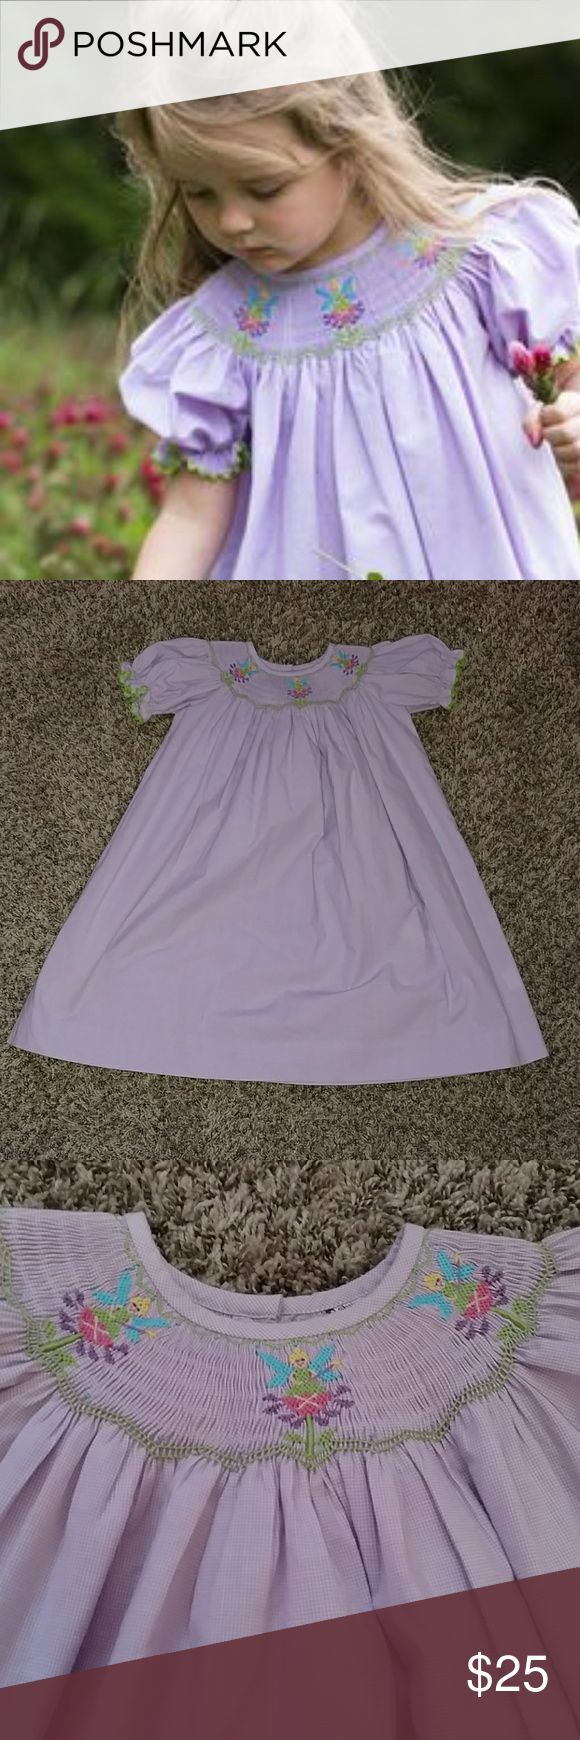 Shrimp & Grits Kids Purple Fairy Dress This is a brand new Shrimp & Grits Kids purple fairy dress. Great to wear for any occasion. Size 4t Shrimp & Grits Kids Dresses